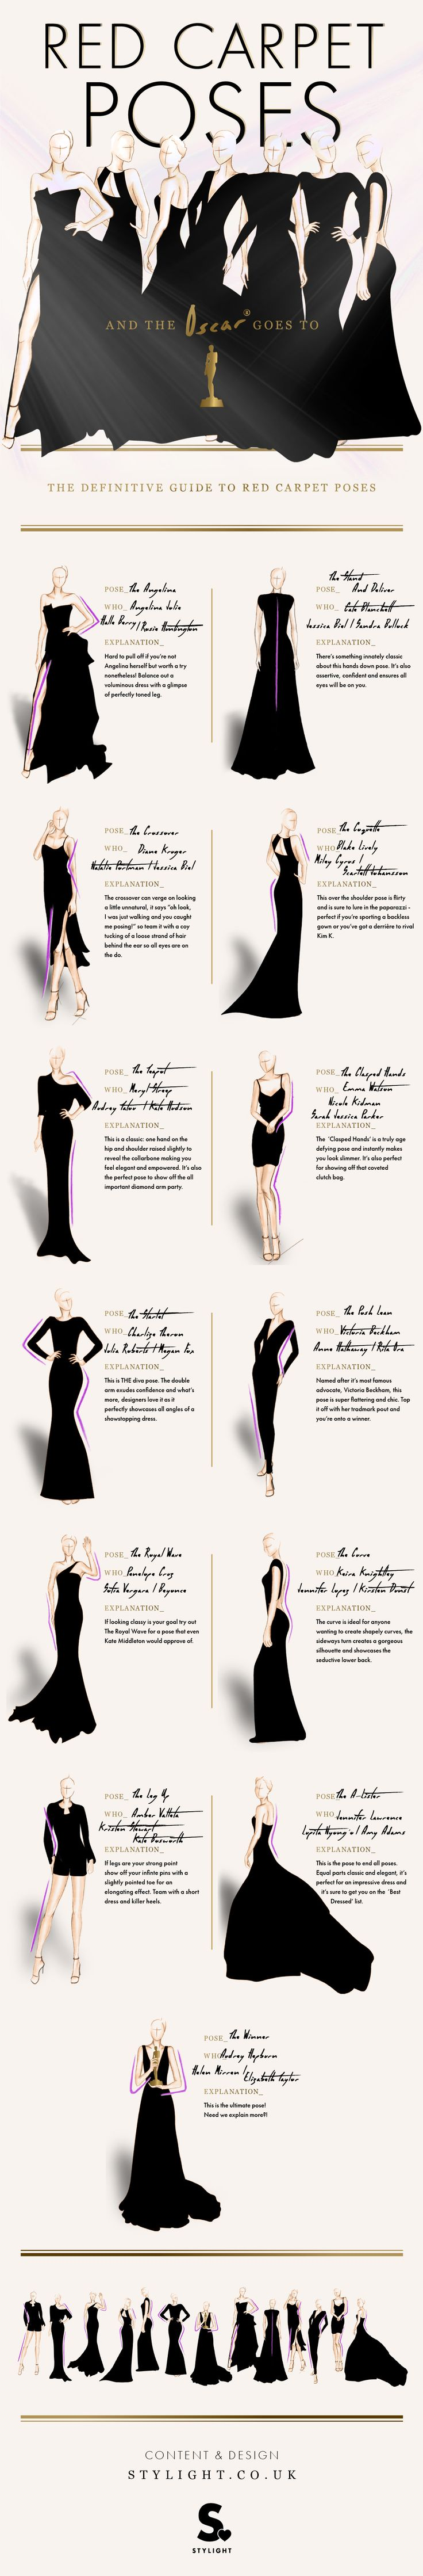 Red Carpet Poses - The definitive guide - Learn how your favourite celebrities pose perfectly on the red carpet #infographic...x